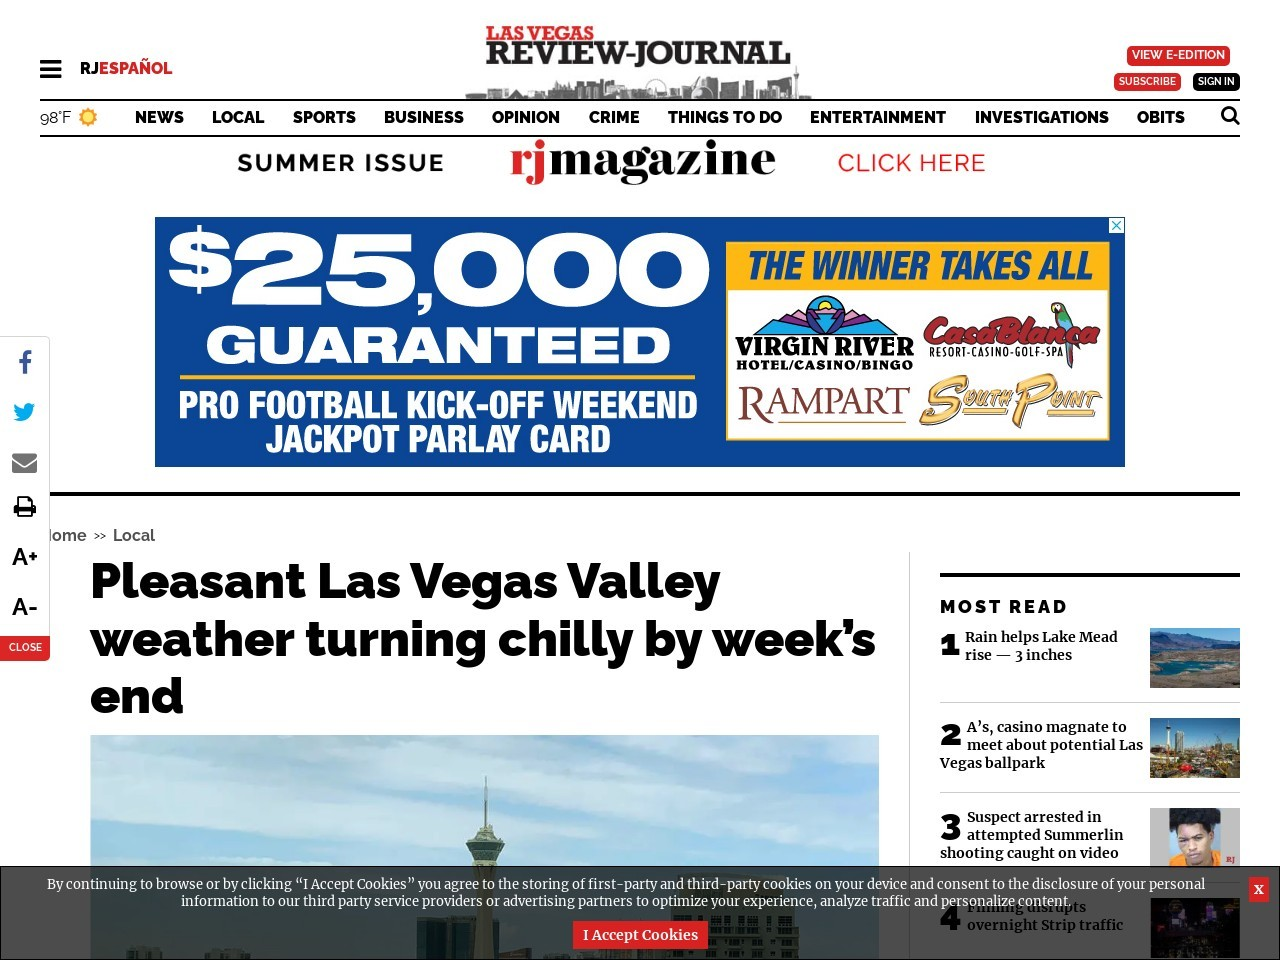 Pleasant Las Vegas Valley weather turning chilly by week's end